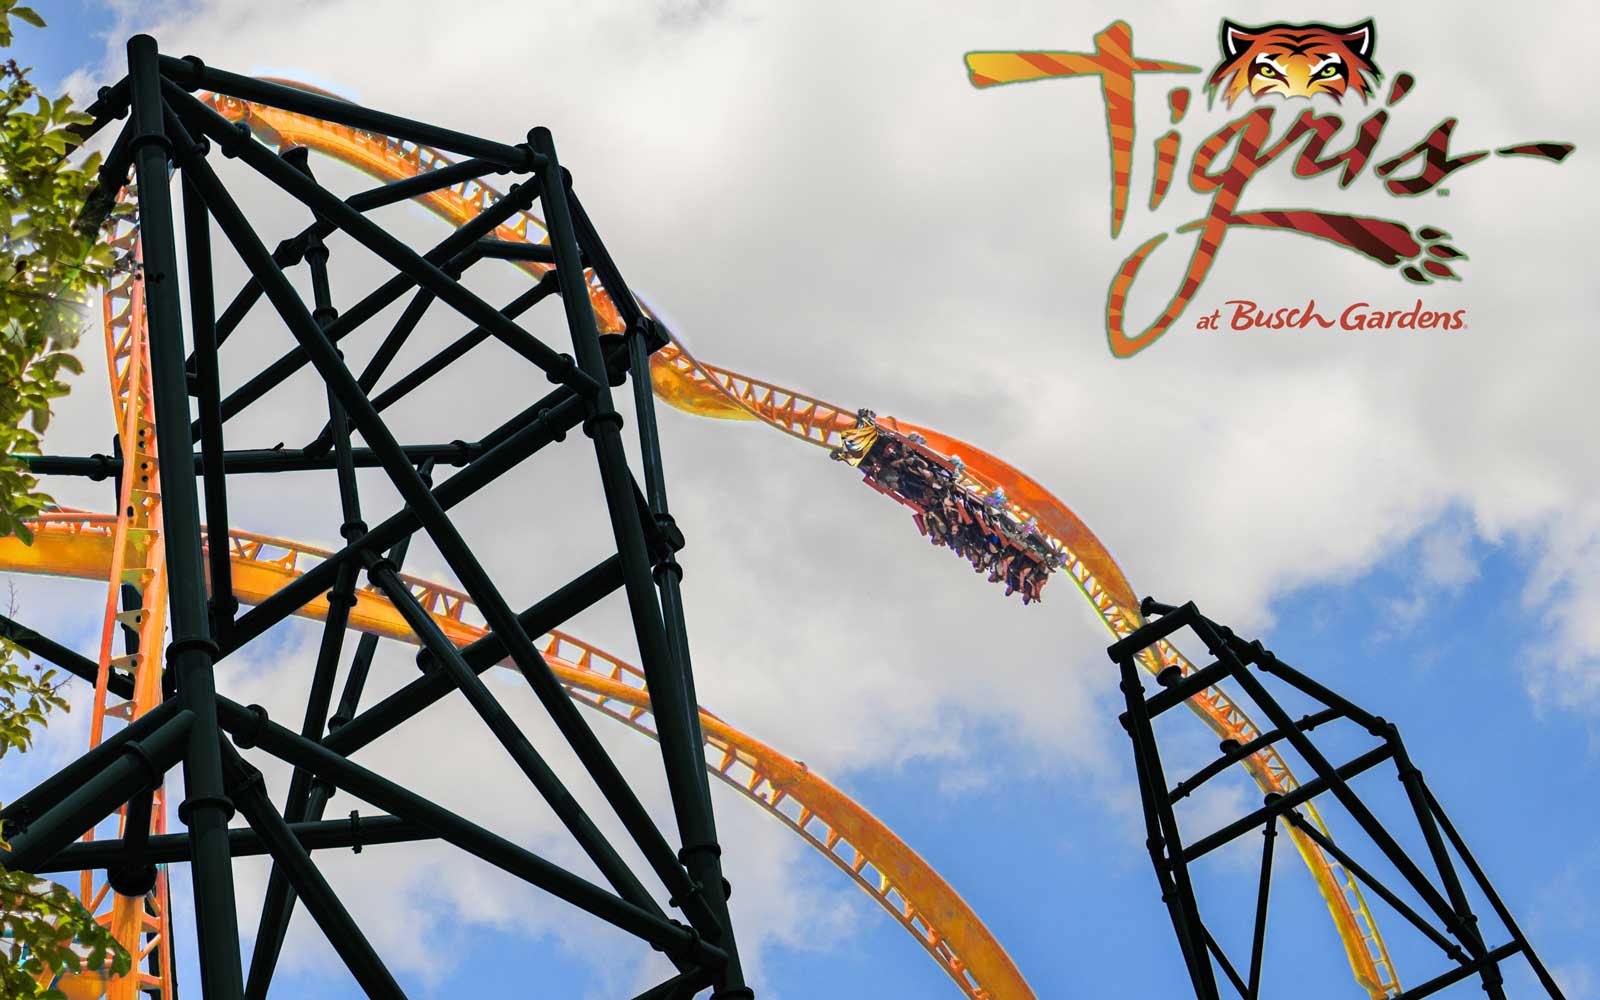 Florida 39 s tallest launch roller coaster will fling riders - Busch gardens tampa roller coasters ...